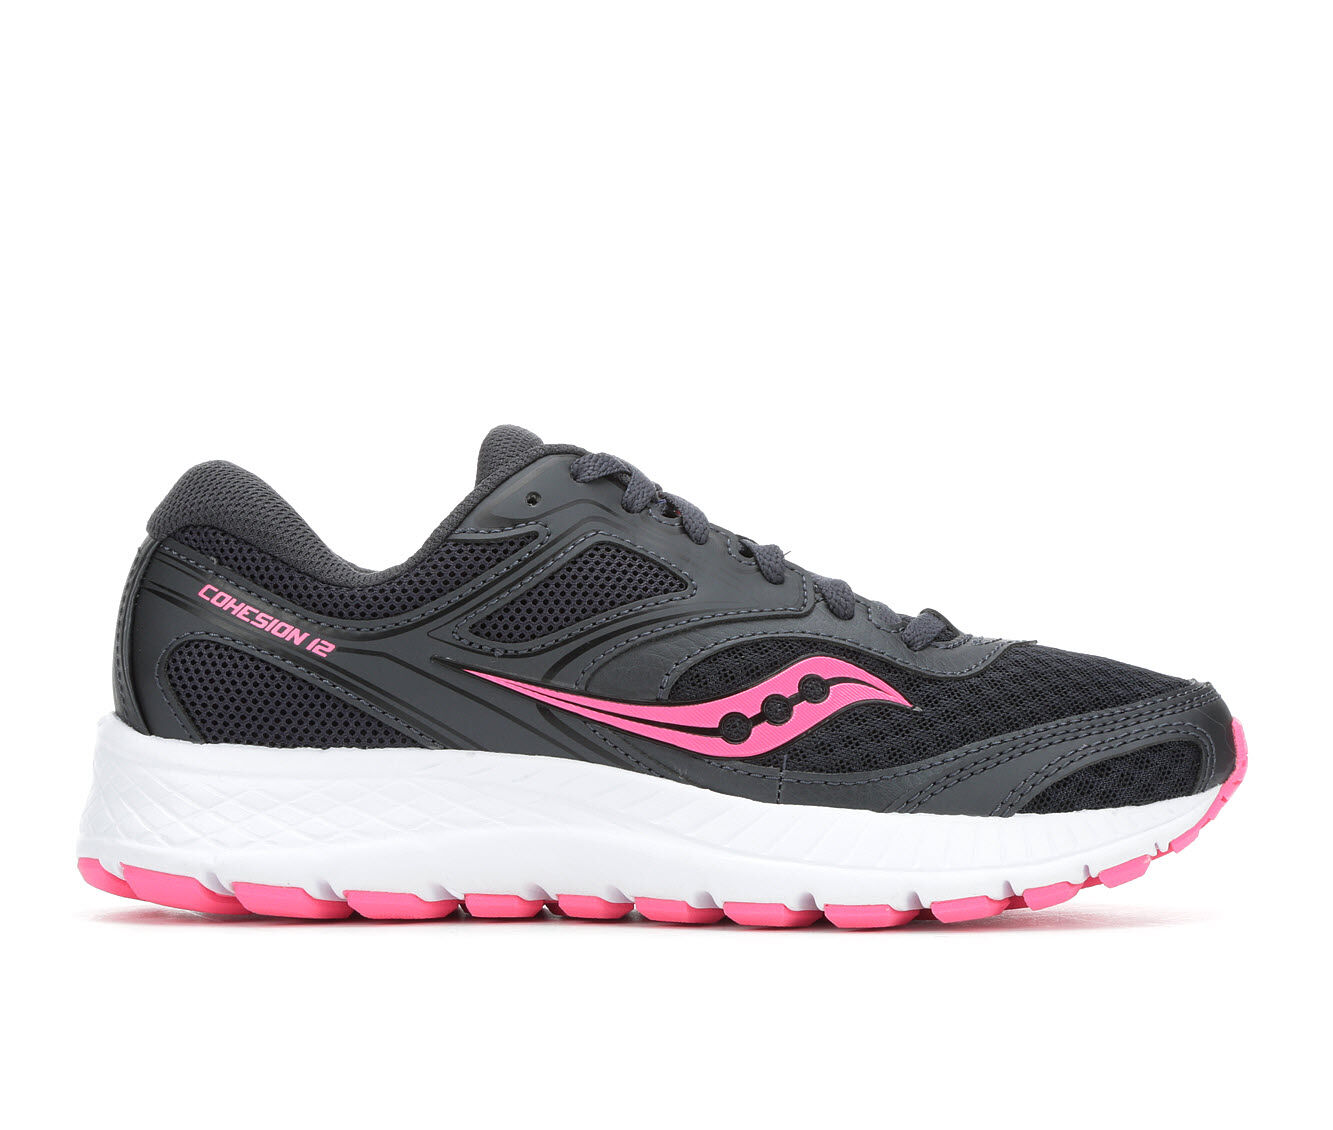 Beautifu Women's Saucony Cohesion 12 Running Shoes Black/Pink